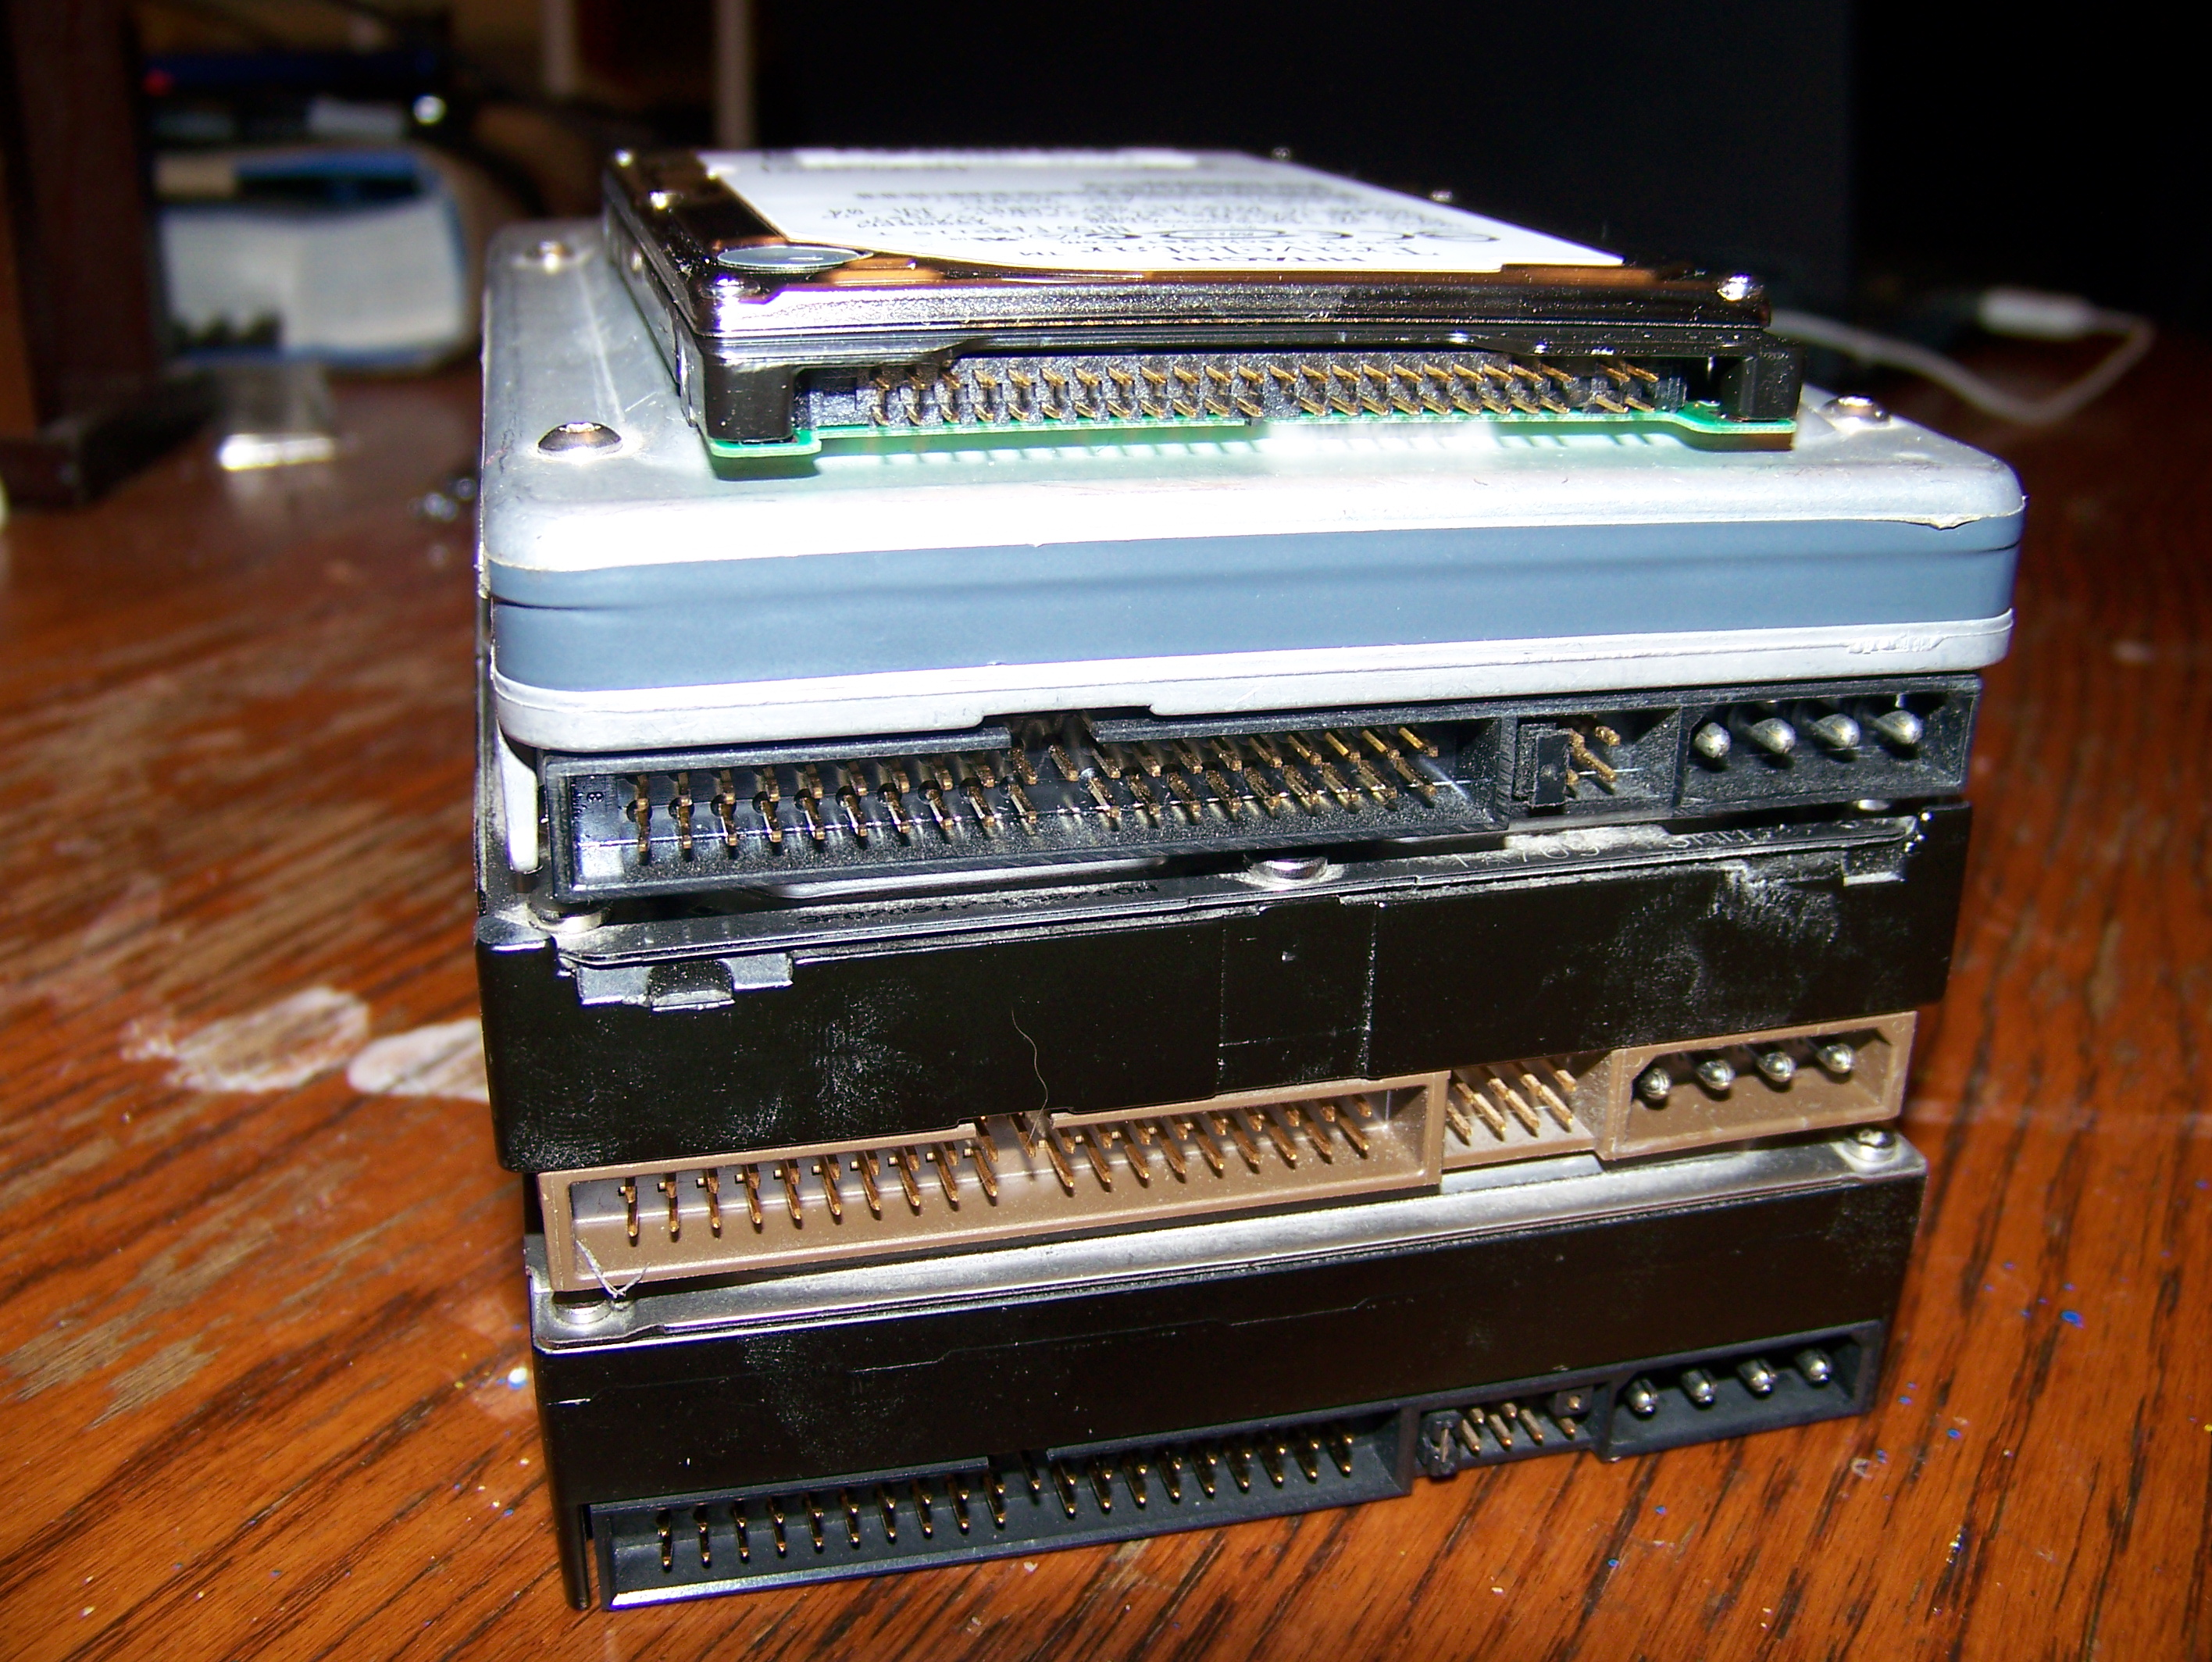 seagate technology essay This paper describes the business activities of seagate technology - one of the world's largest manufacturers of computer disk drives and related data storage devices when its stock price was undervalued, the management of seagate worked with a private equity firm to plan a restructure of the company.